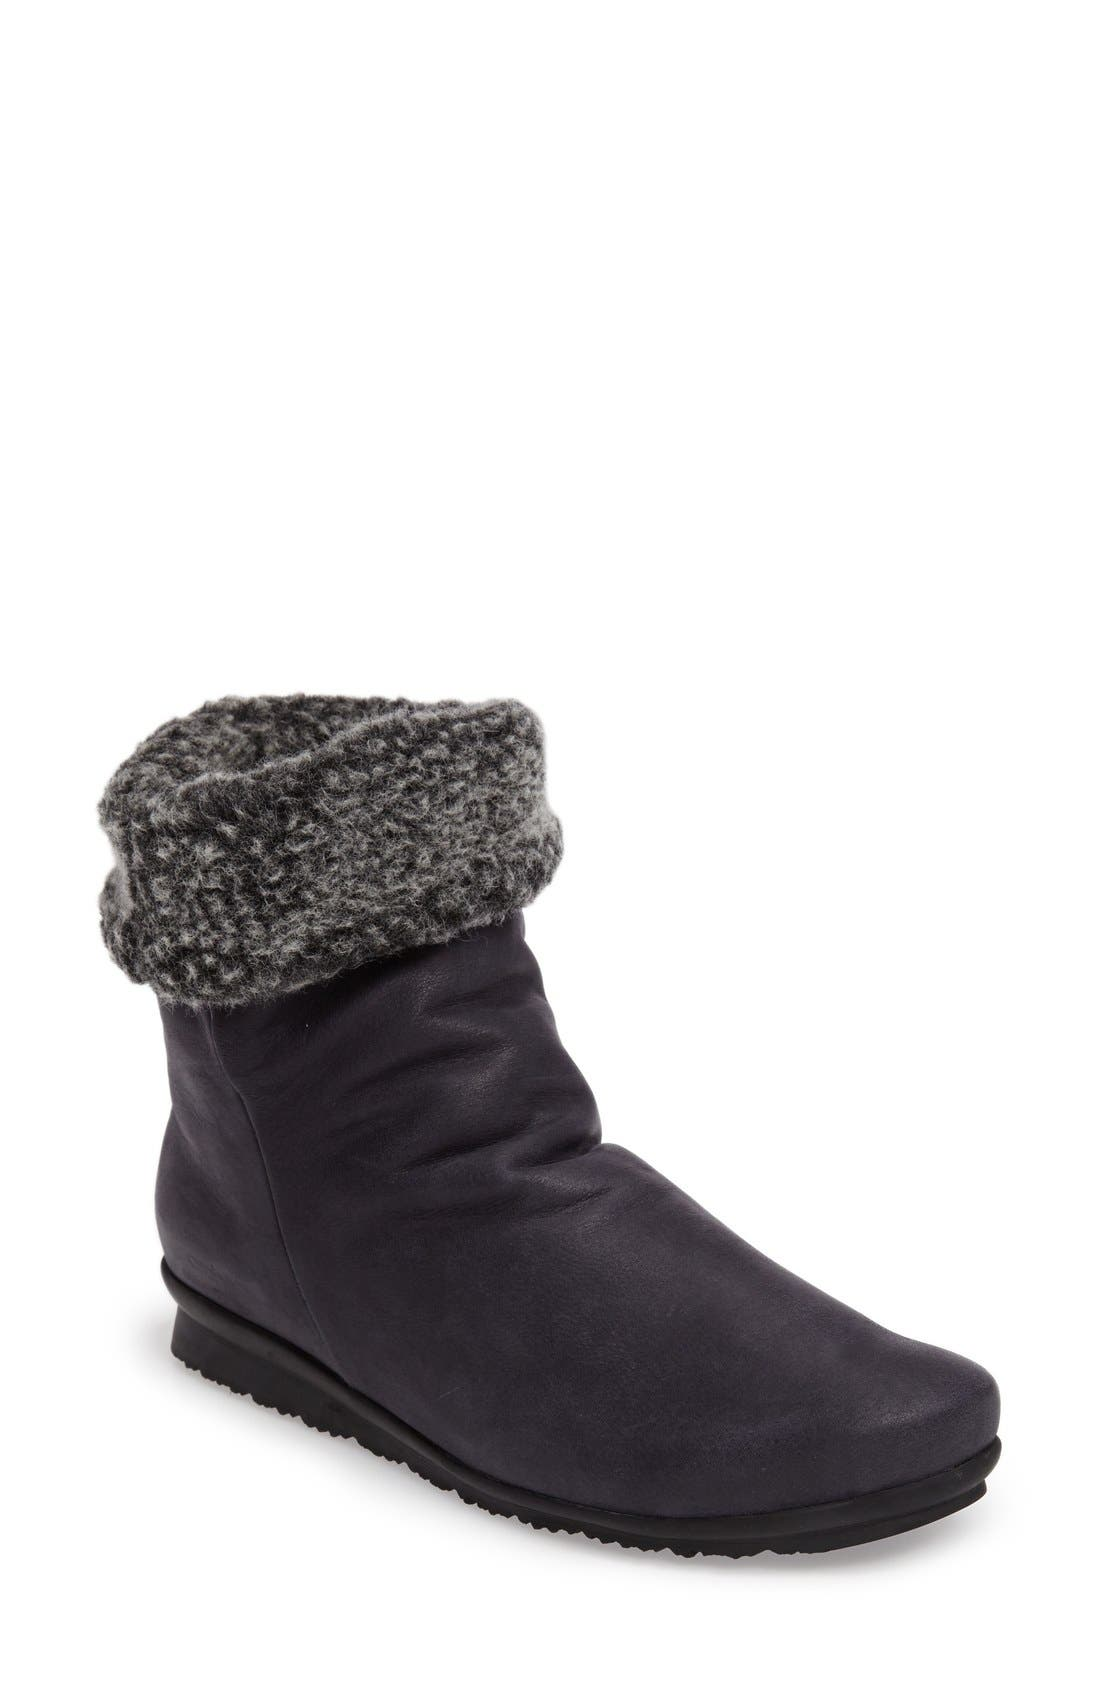 Barosa Faux Shearling Cuffed Bootie,                         Main,                         color,